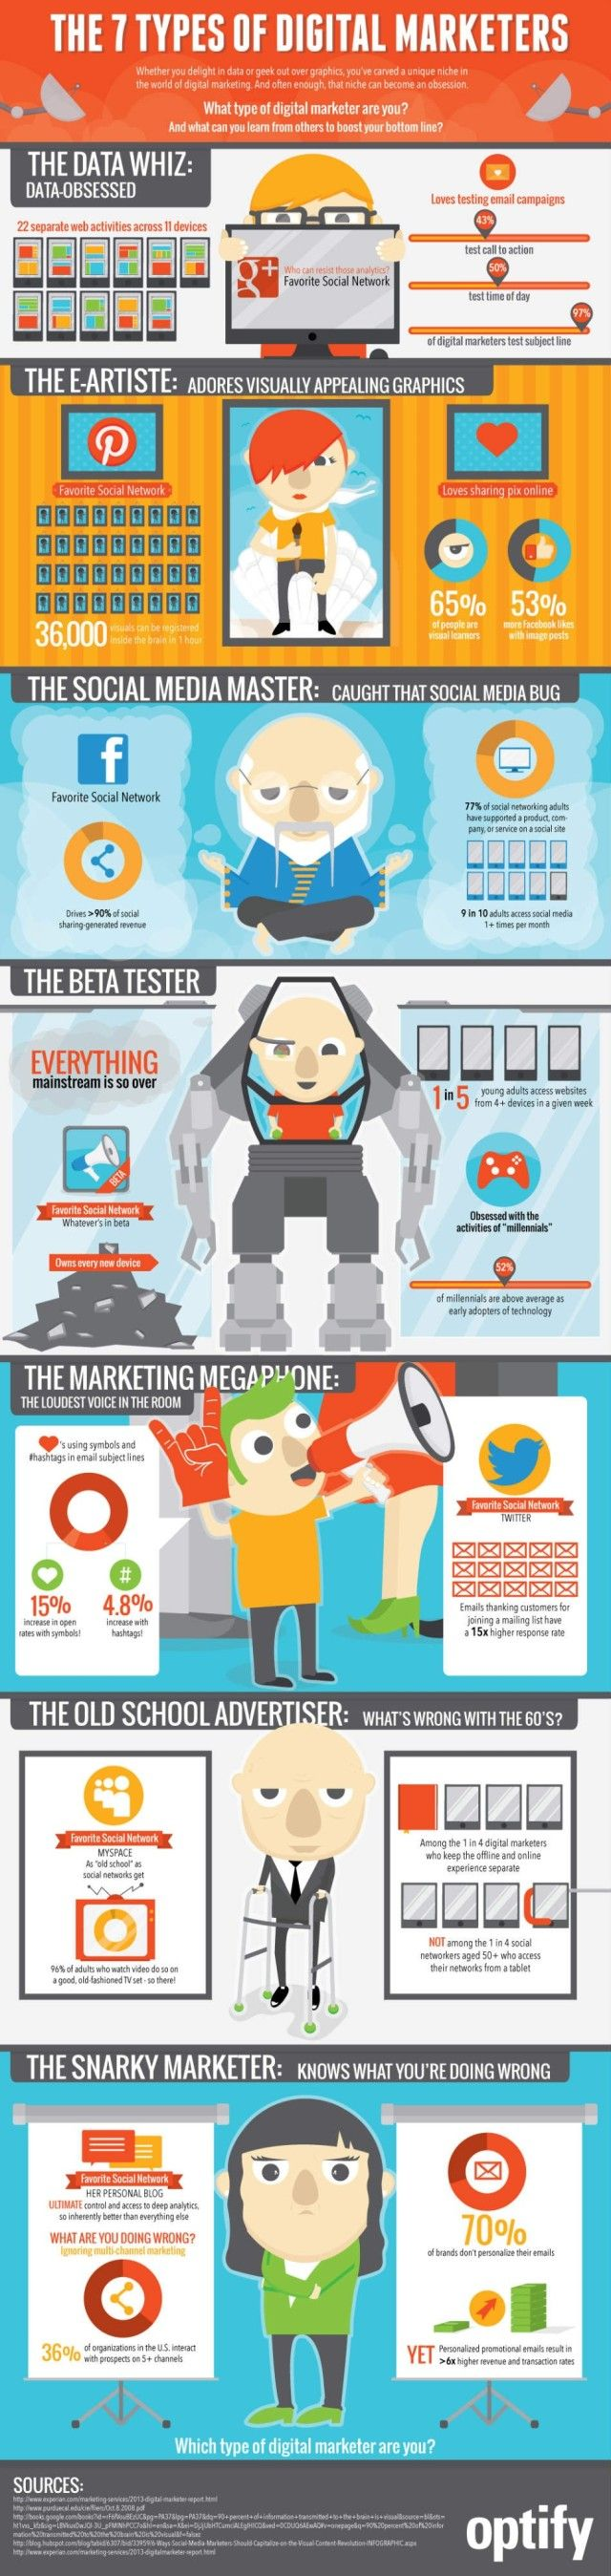 Digital Marketer, Which of these 7 Types Are You? [infographic] | WeRSM | We Are Social Media